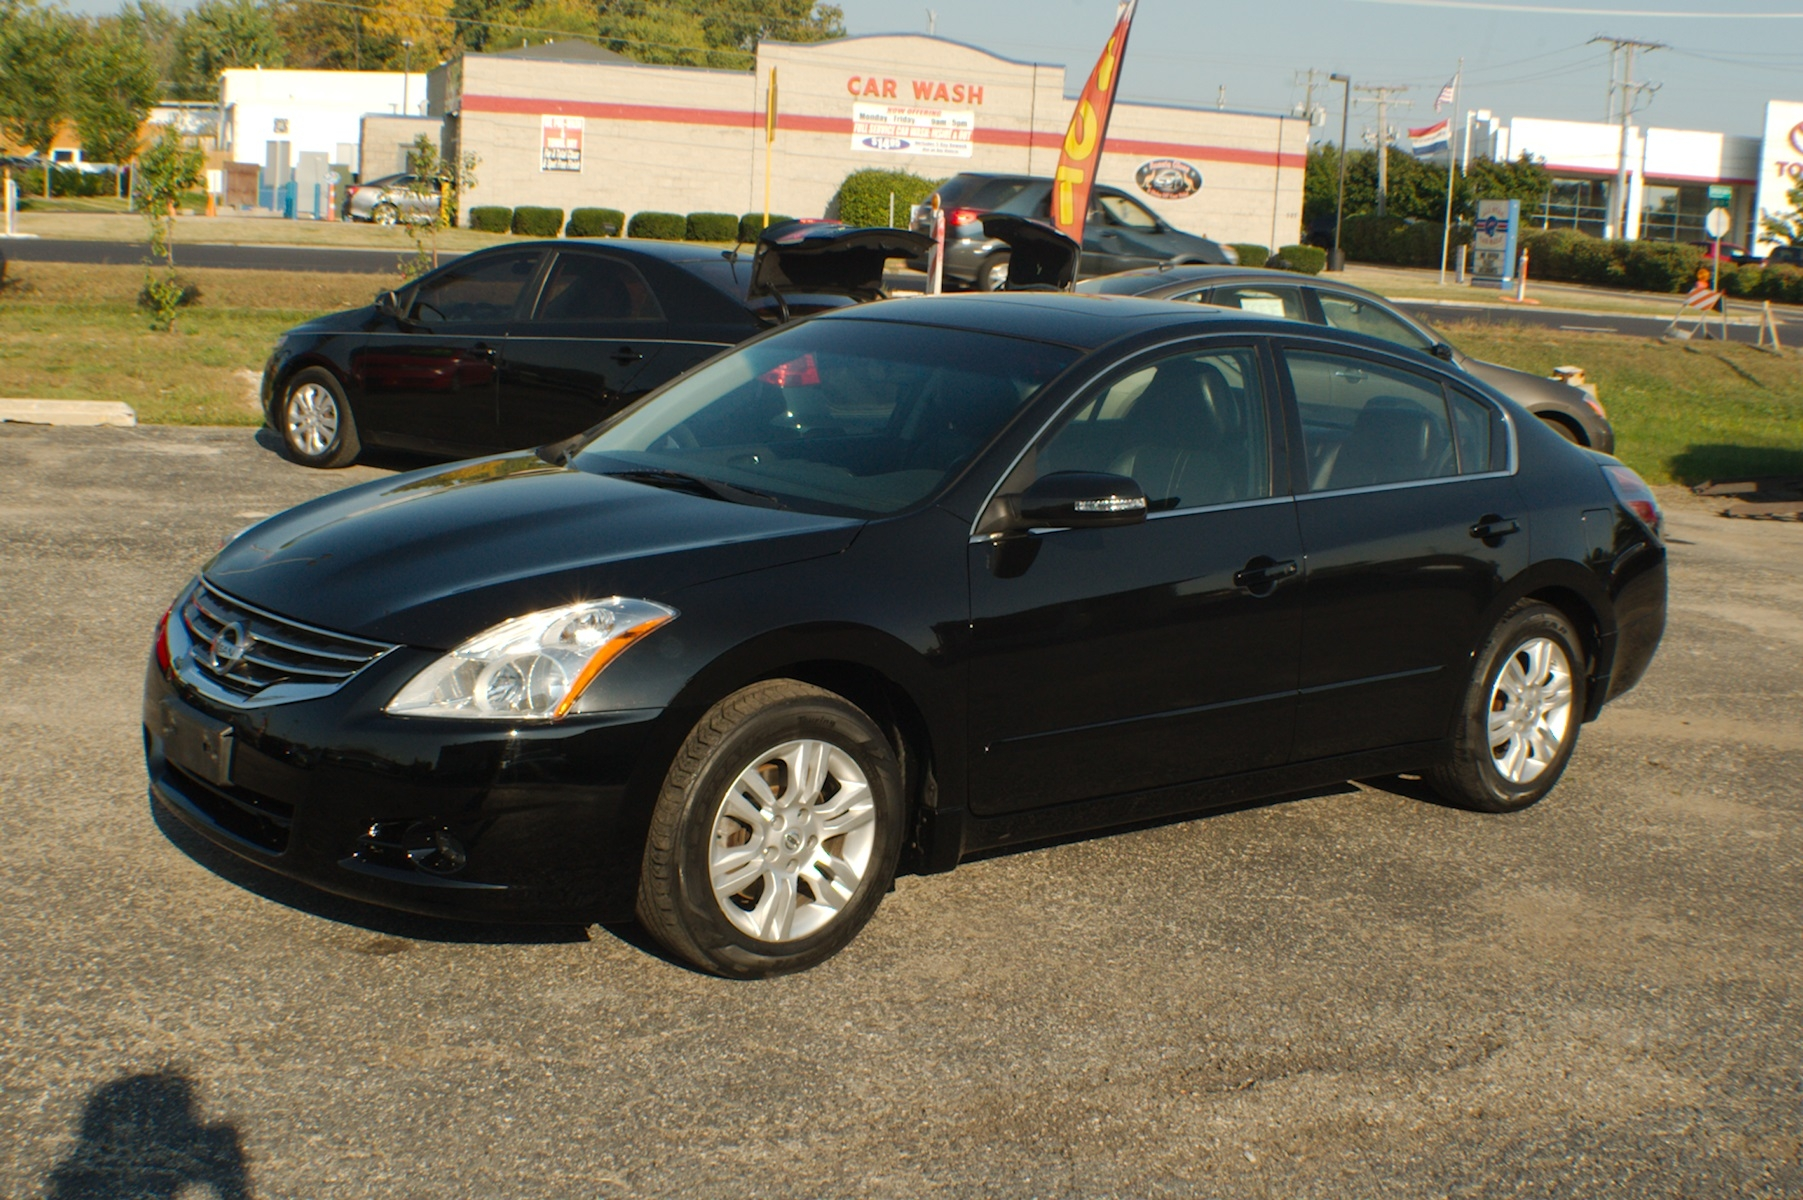 2010 Nissan Altima SL Black Sedan Used Car Sale Antioch Zion Waukegan Lake County Illinois